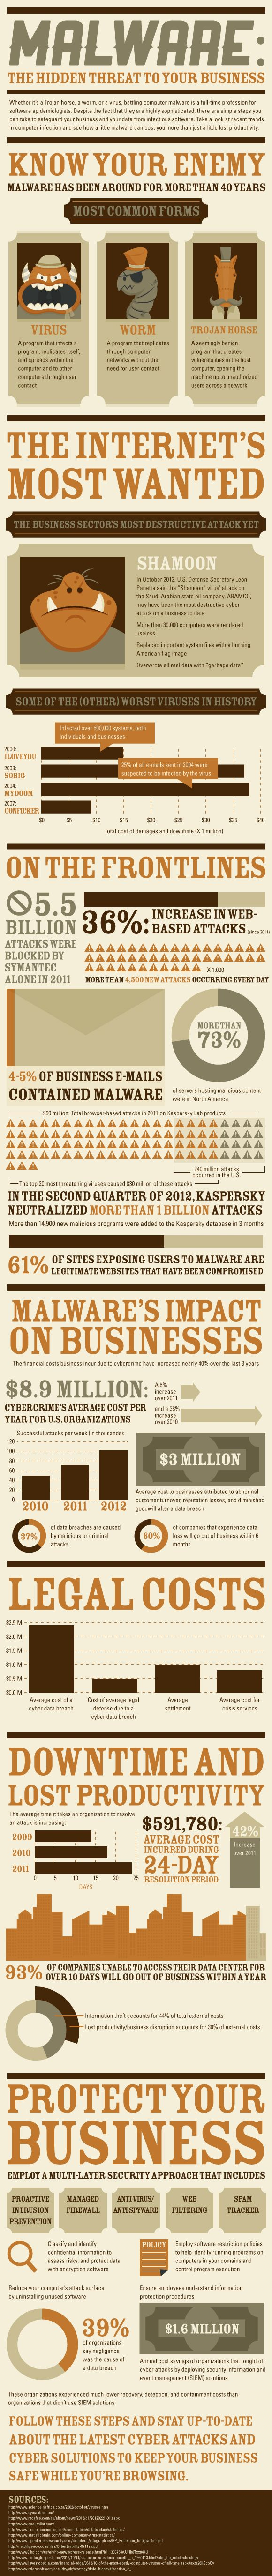 Malware The Hidden Threat to Your Business